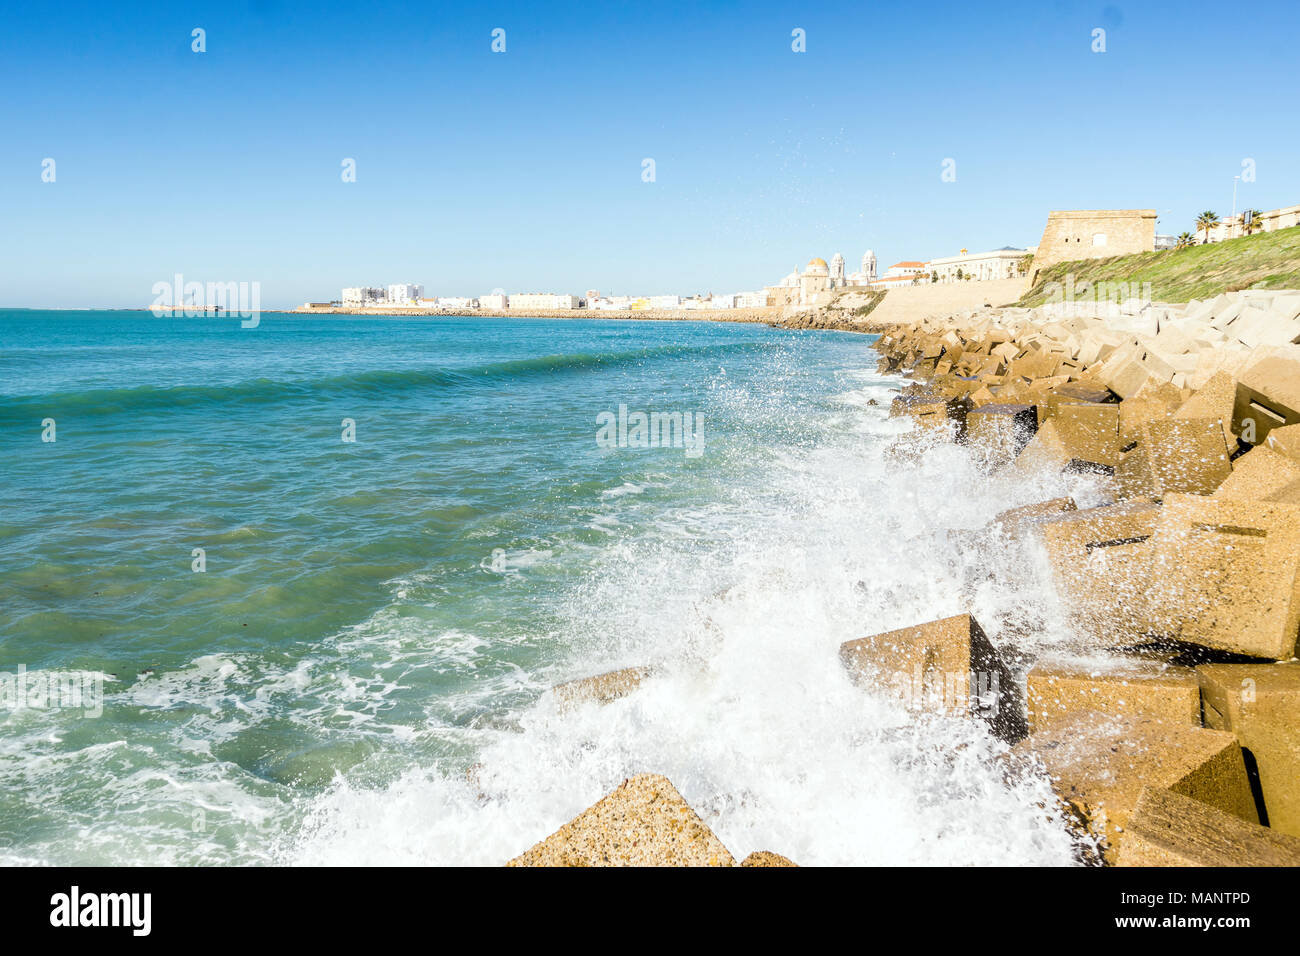 Atlantic waves breaking on the urbanized shore of old Cadiz, Andalusia, Spain - Stock Image